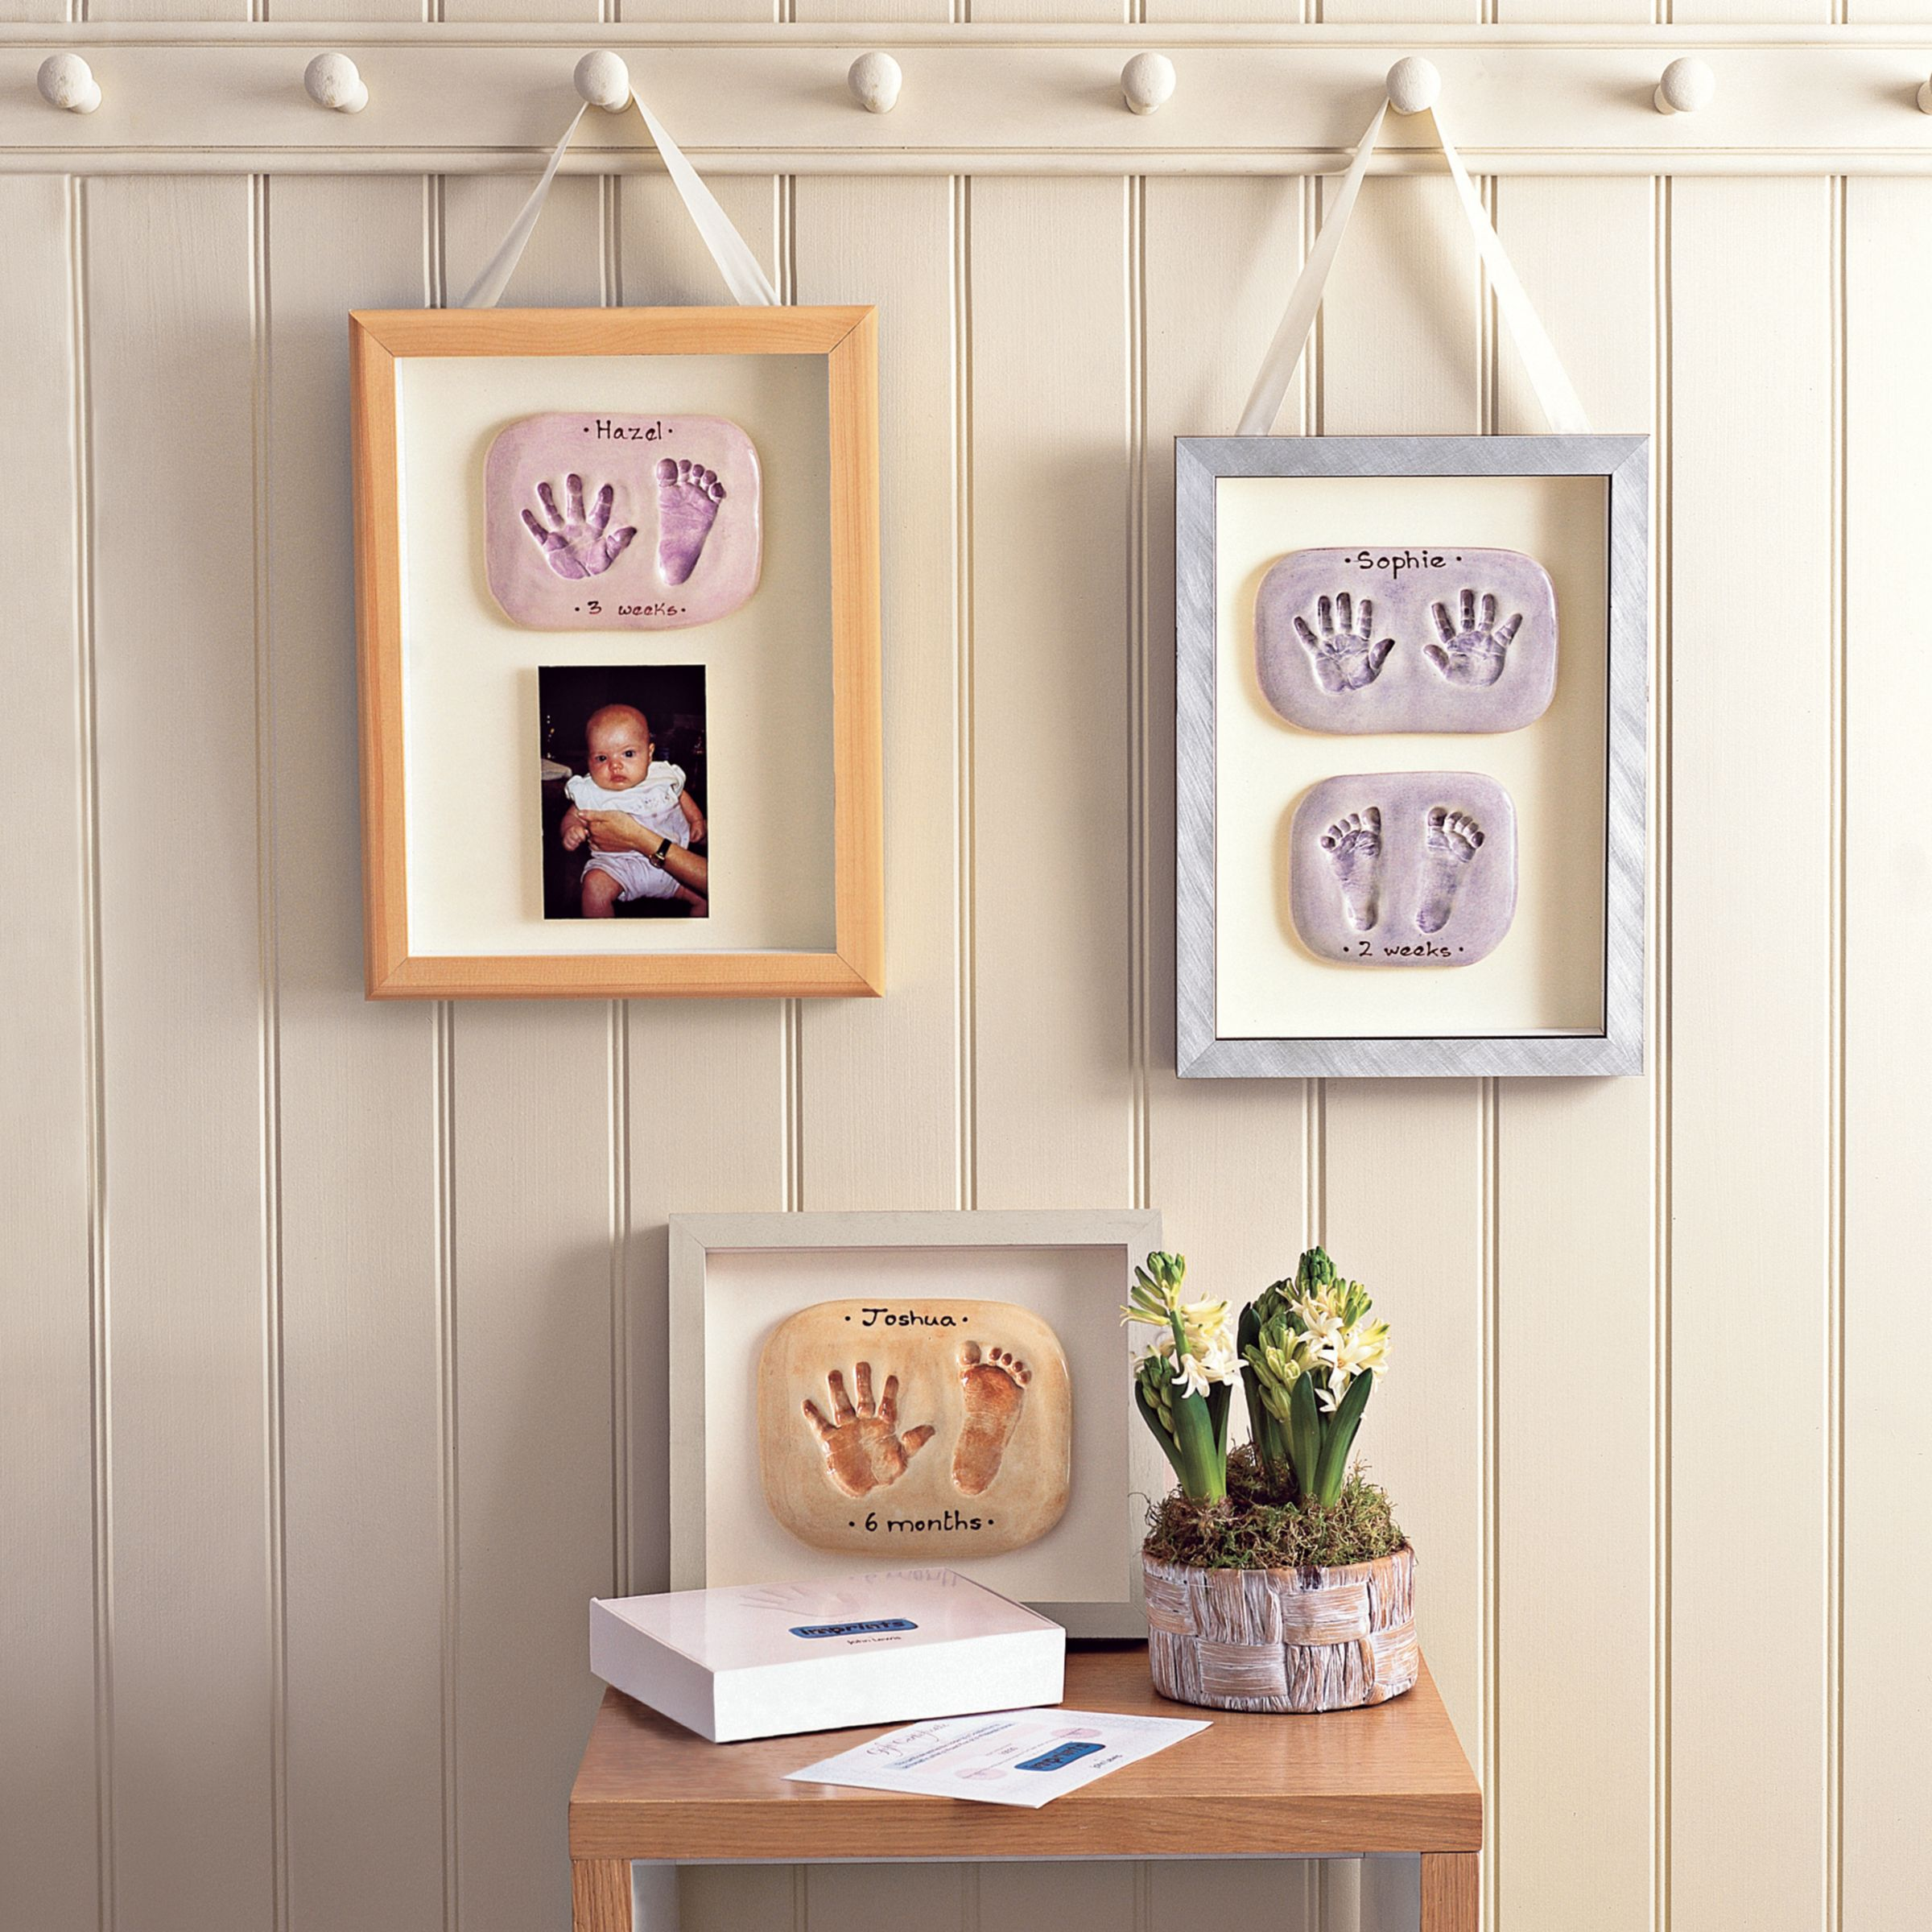 Imprints Gift Certificate, Double Print, Natural Pine Or Whitewash Frame